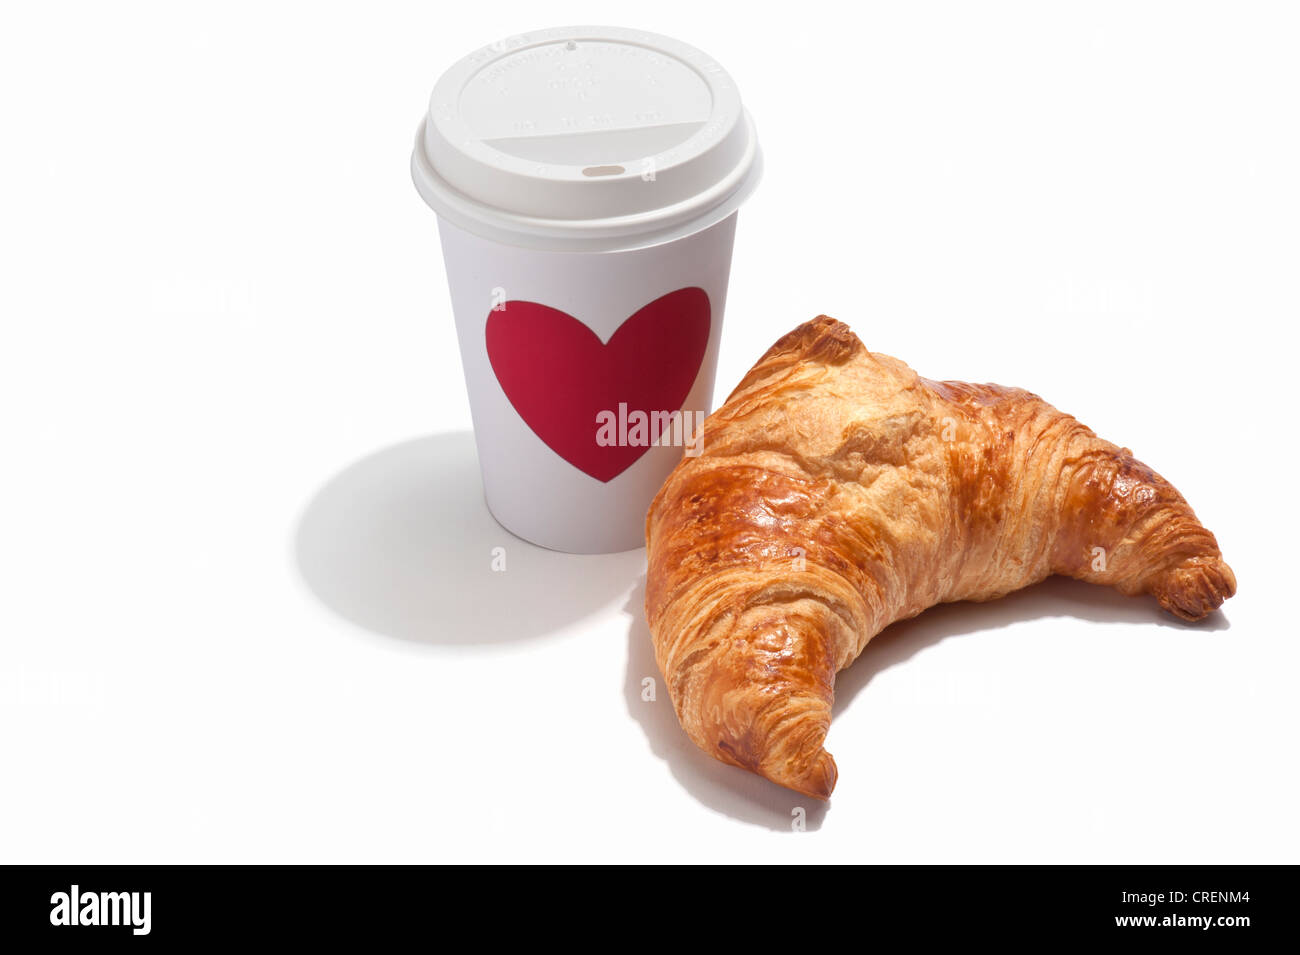 A croissant and a takeaway drink cup Stock Photo